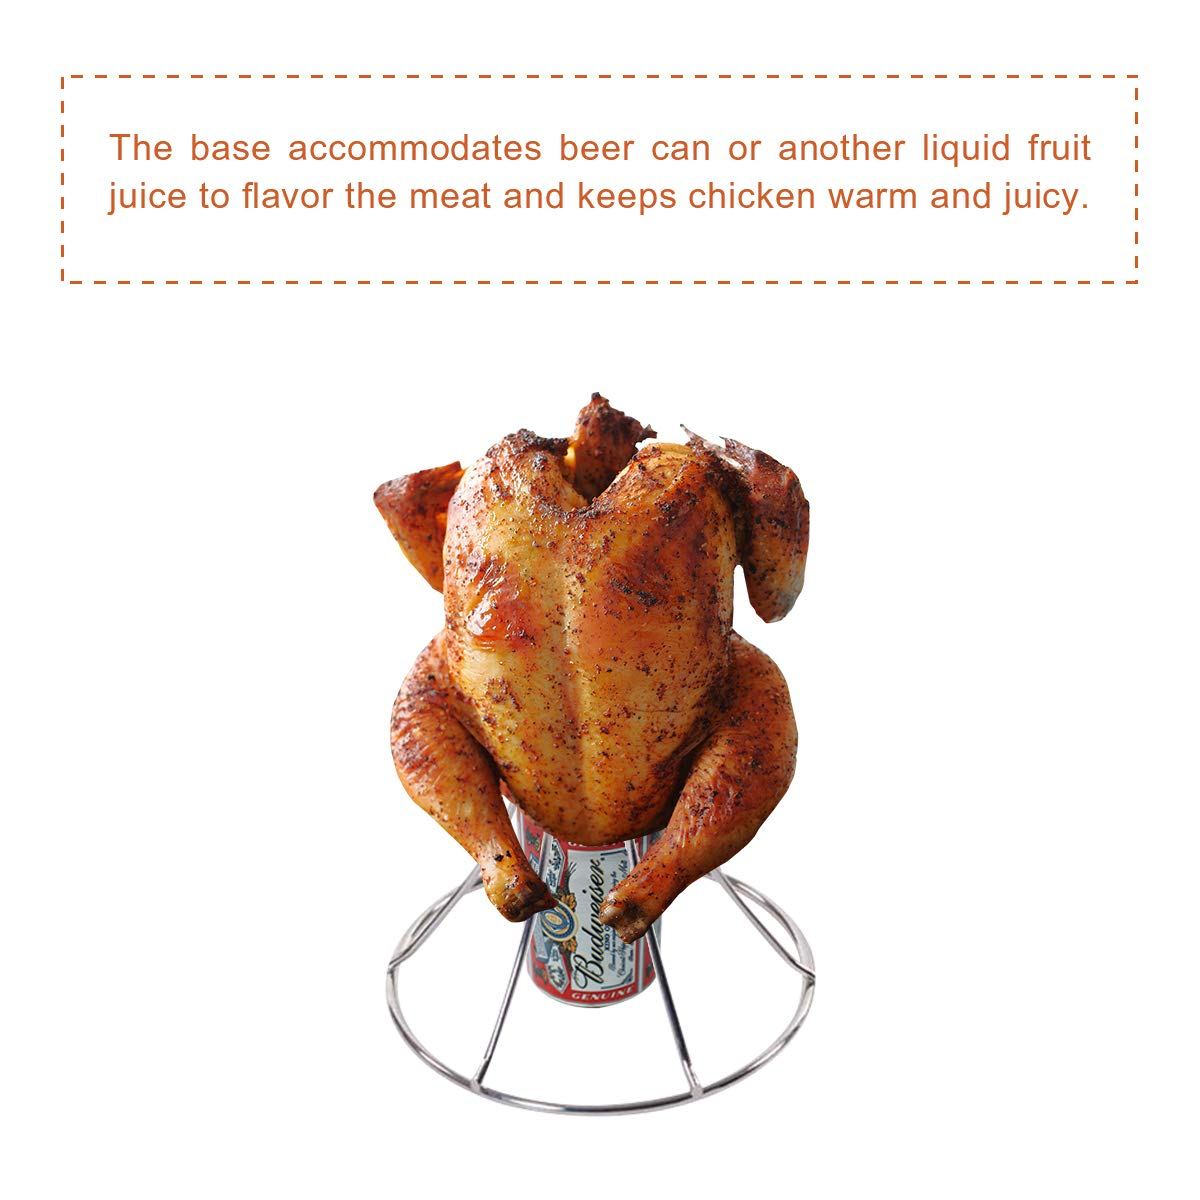 QQMaster Vertical Chicken Roaster Stainless Steel Turkey Rack Roaster Beer Can Meat Rack Holder Non-Stick Poultry Grill Stand Can Hold Turkey Or Cornish Game Hens Fit for Big Green Egg,Kamado Grills by QQMaster (Image #4)